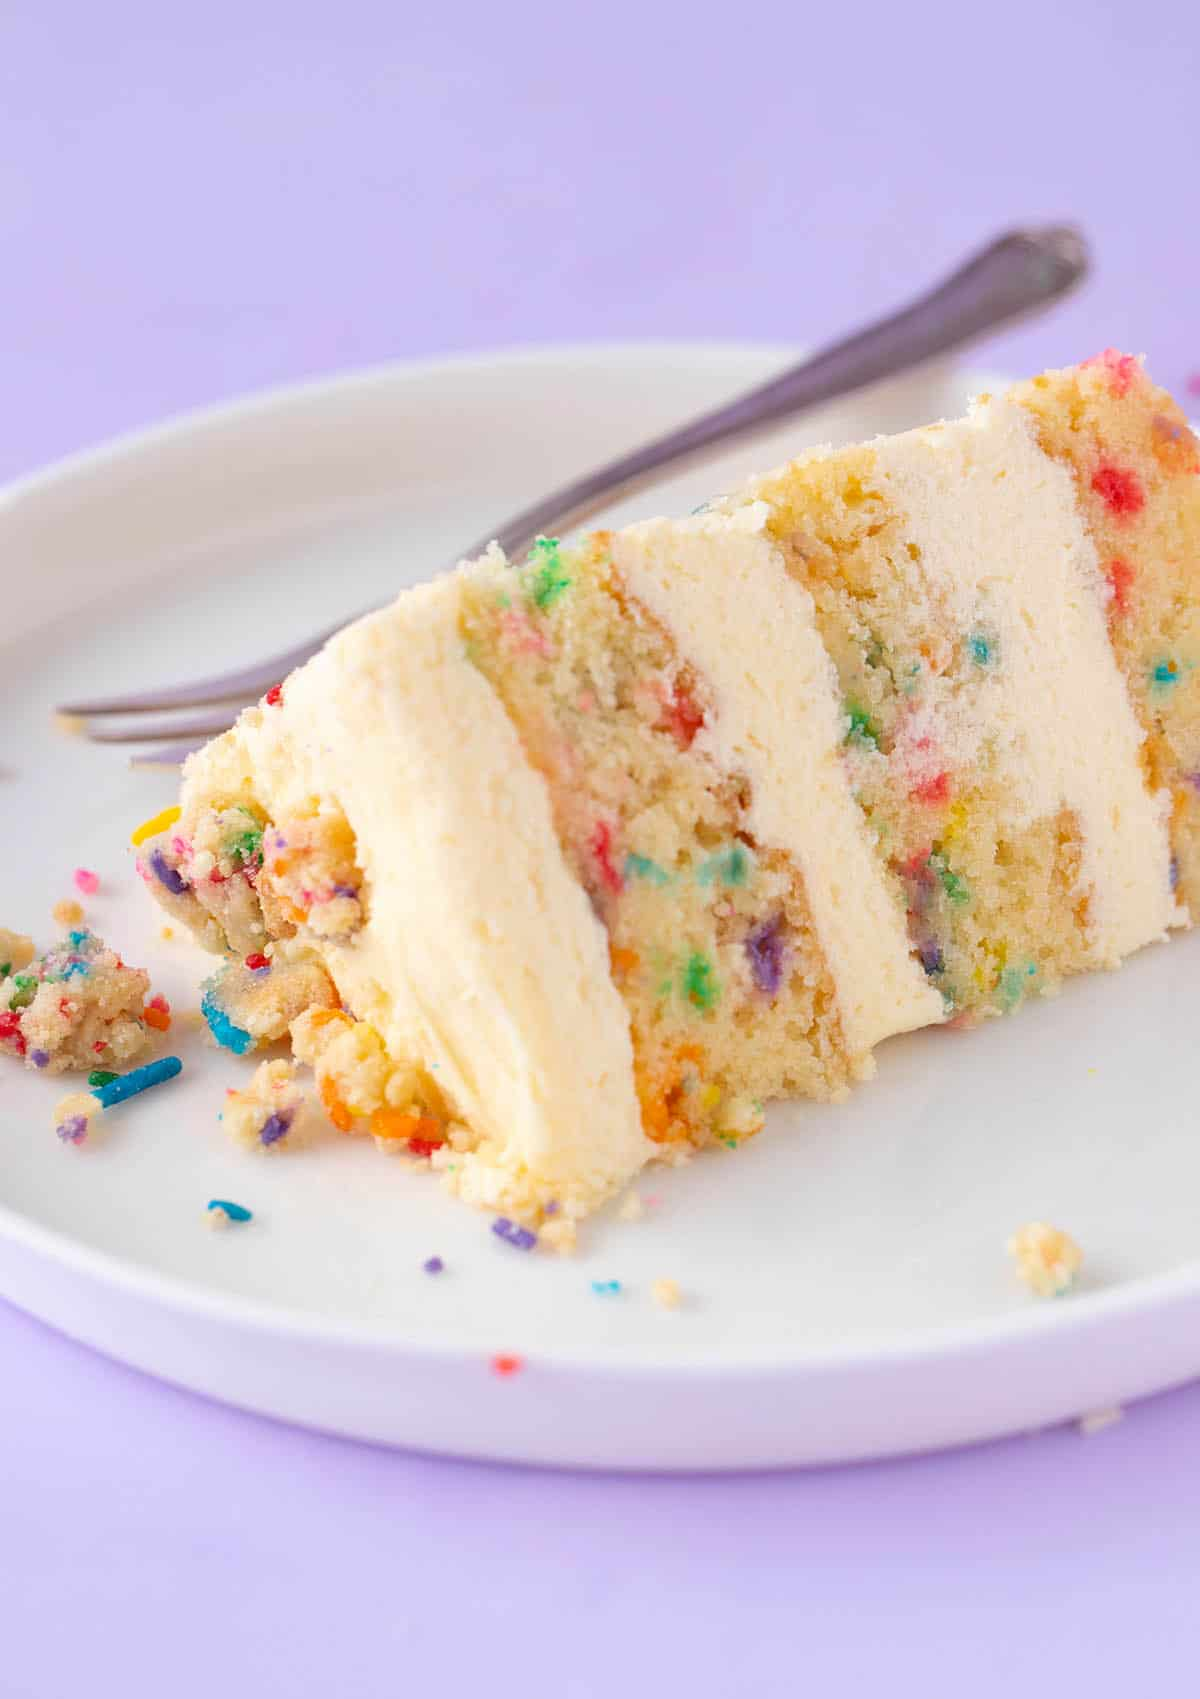 A piece of funfetti cake sitting on a white plate.